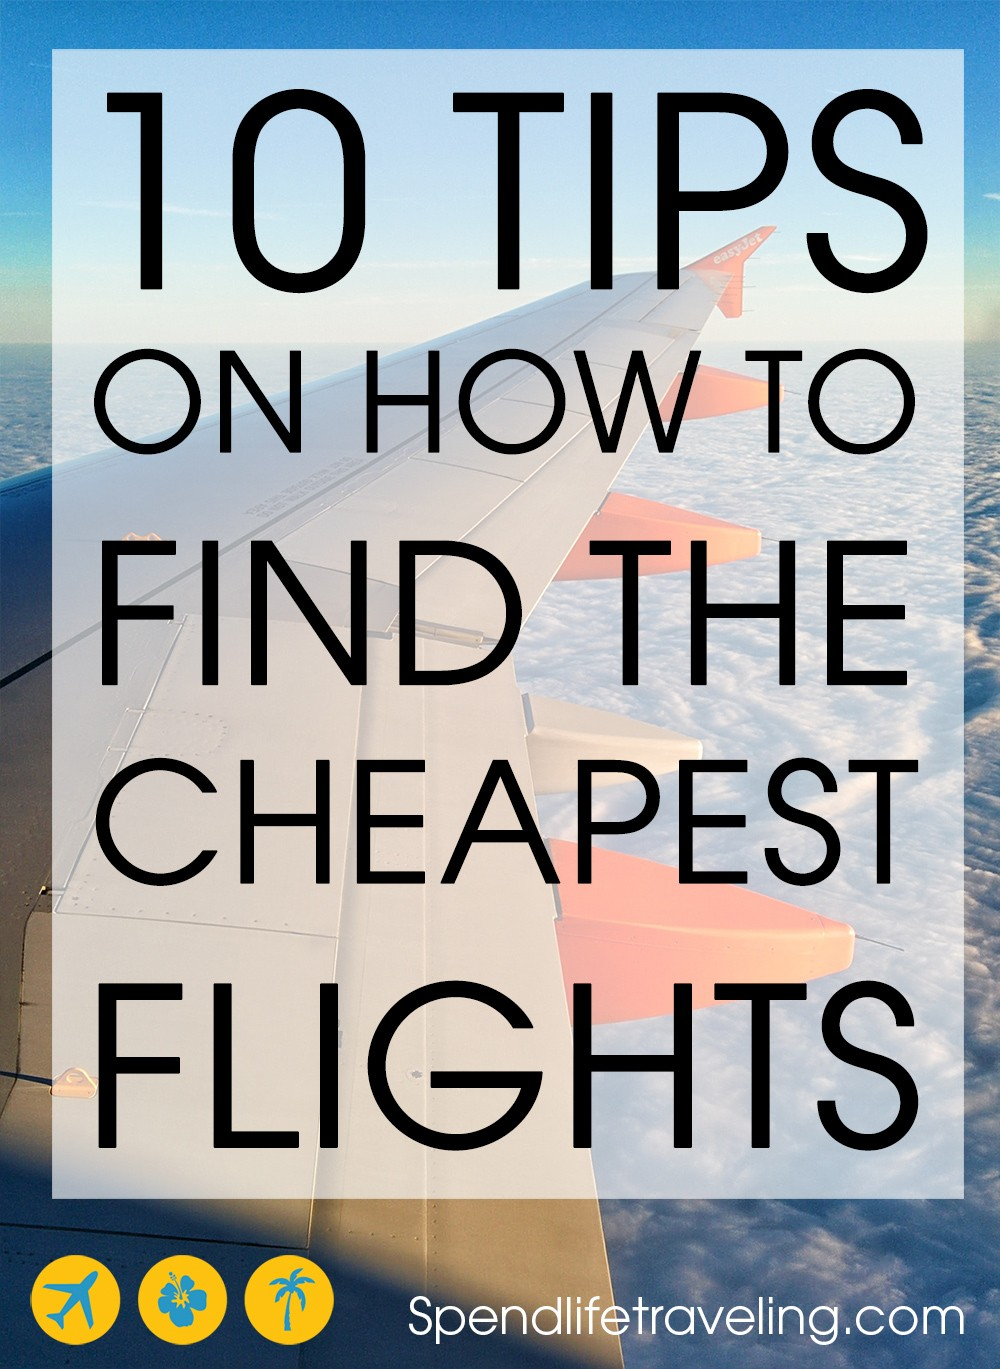 10 practical tips for finding cheap flights to anywhere in the world. Traveling doesn't have to be expensive! #cheapflight #traveltip #cheaptravel